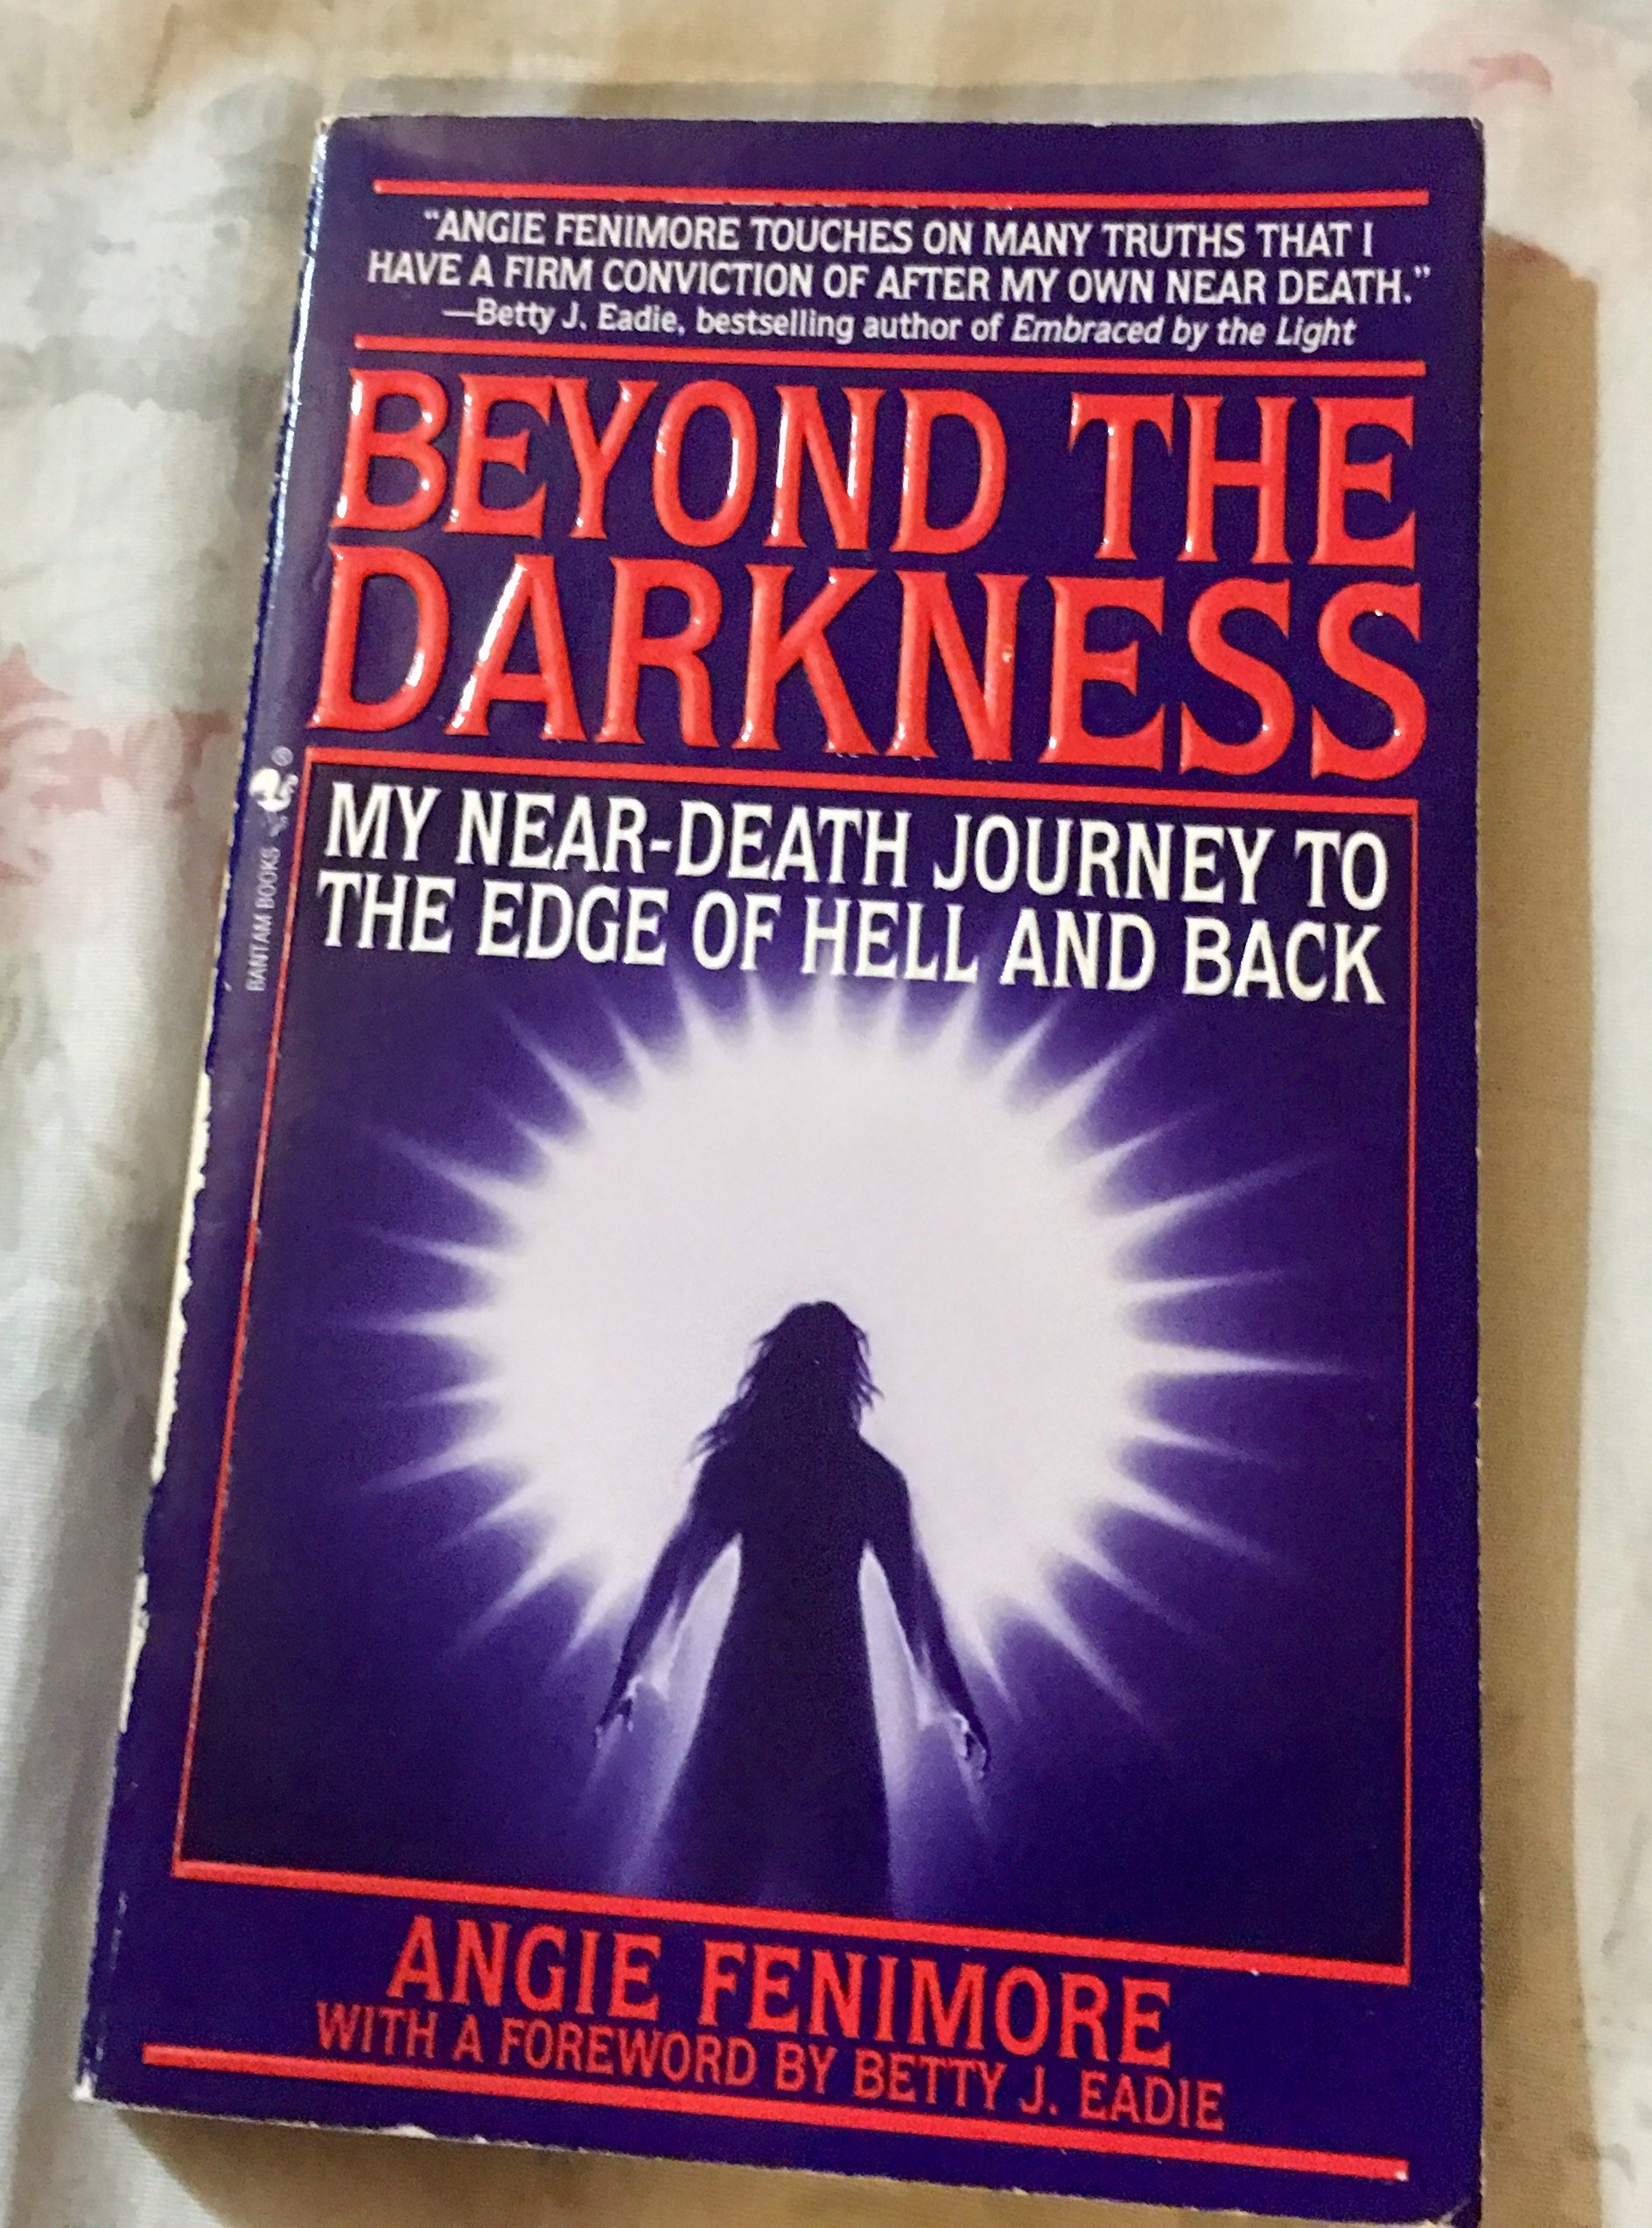 Amazon.com: Beyond The Darkness (9780671854652): Fenimore, Angie: Books